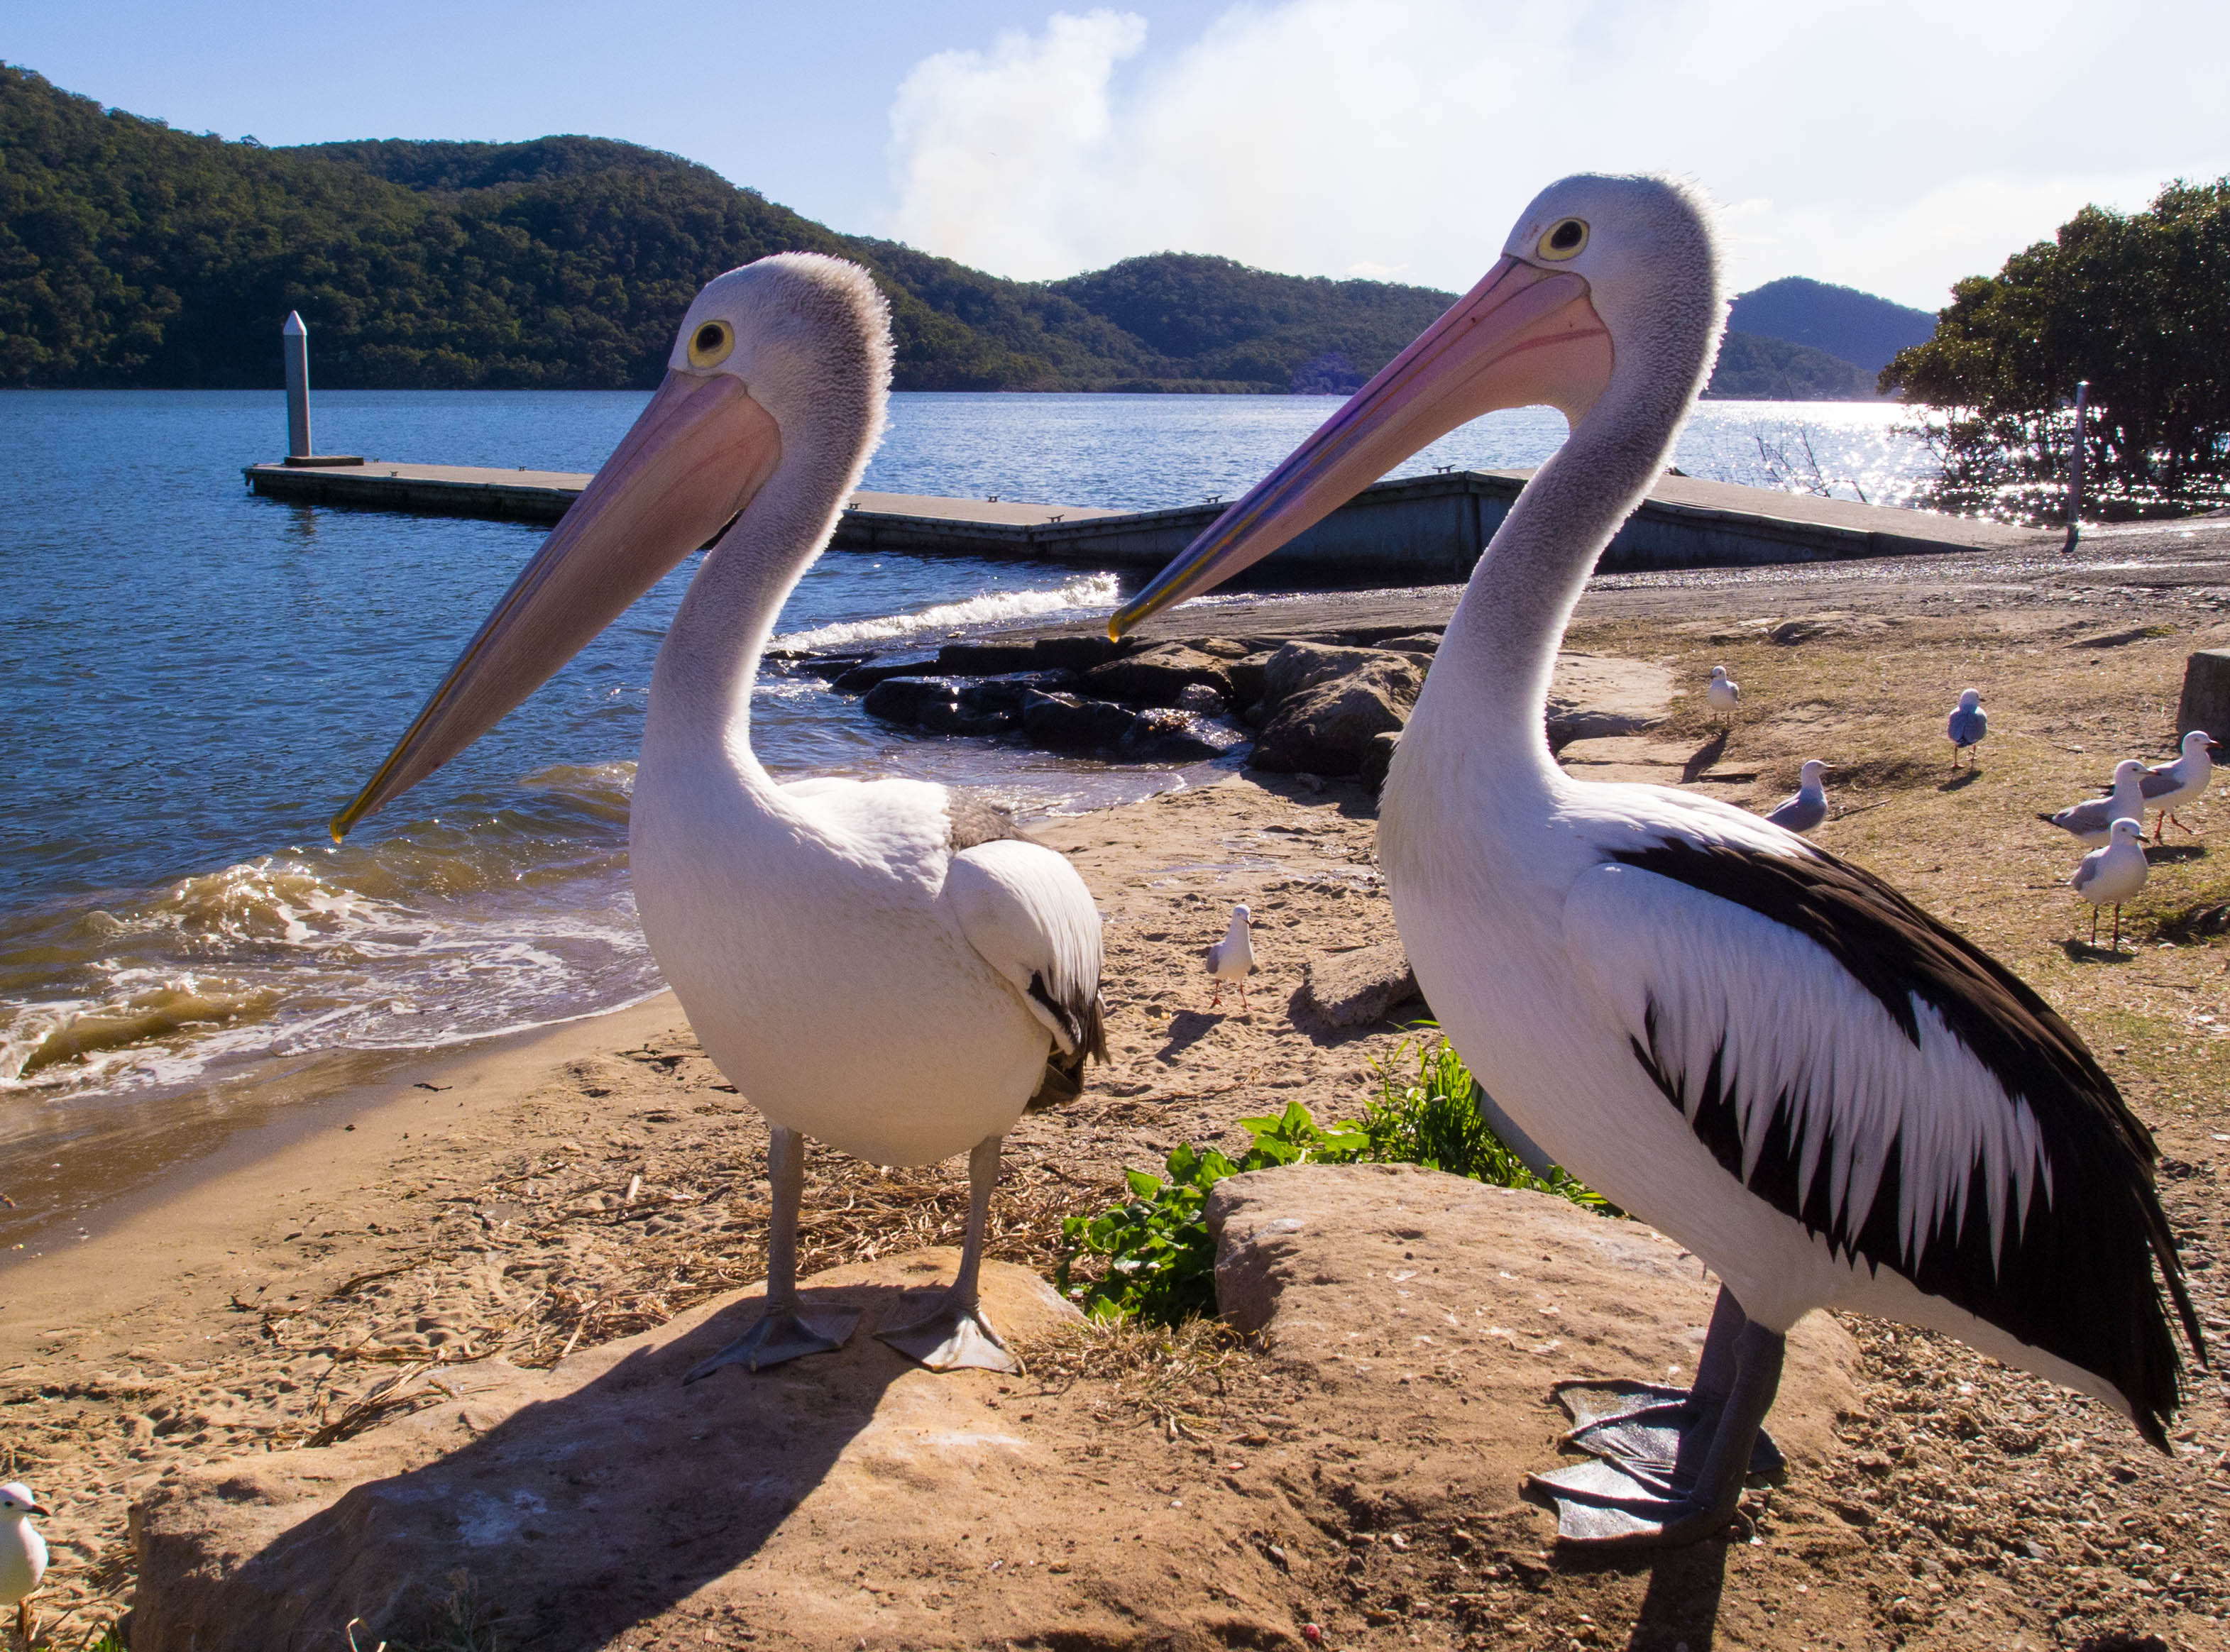 Pelicans at Mooney Mooney boat ramp, Hawkesbury River